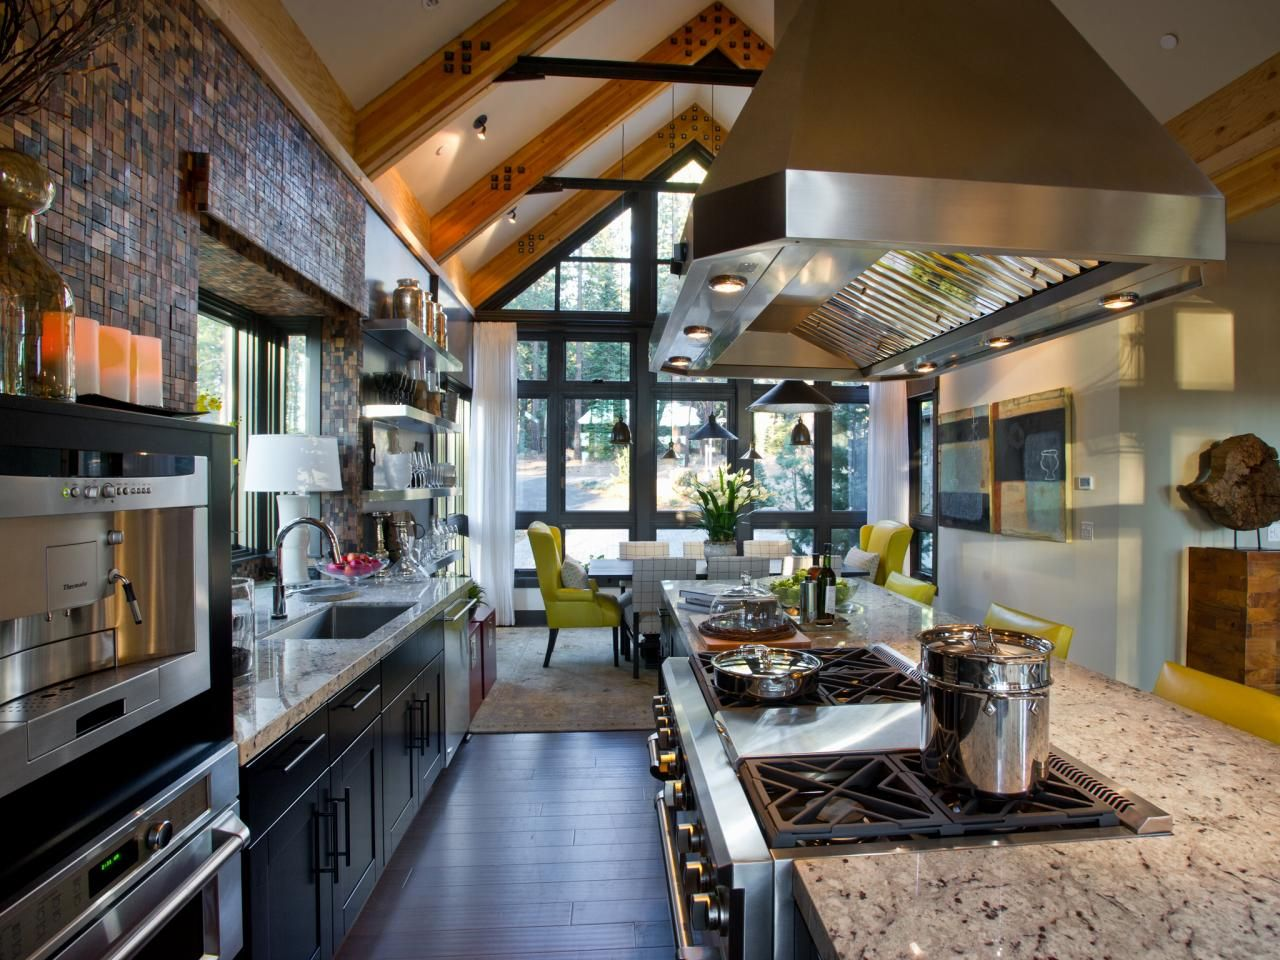 Galley Kitchen With Vaulted Ceiling And Stainless Range Hood Hgtv Dream Home Hgtv Dream Homes Vaulted Ceiling Kitchen